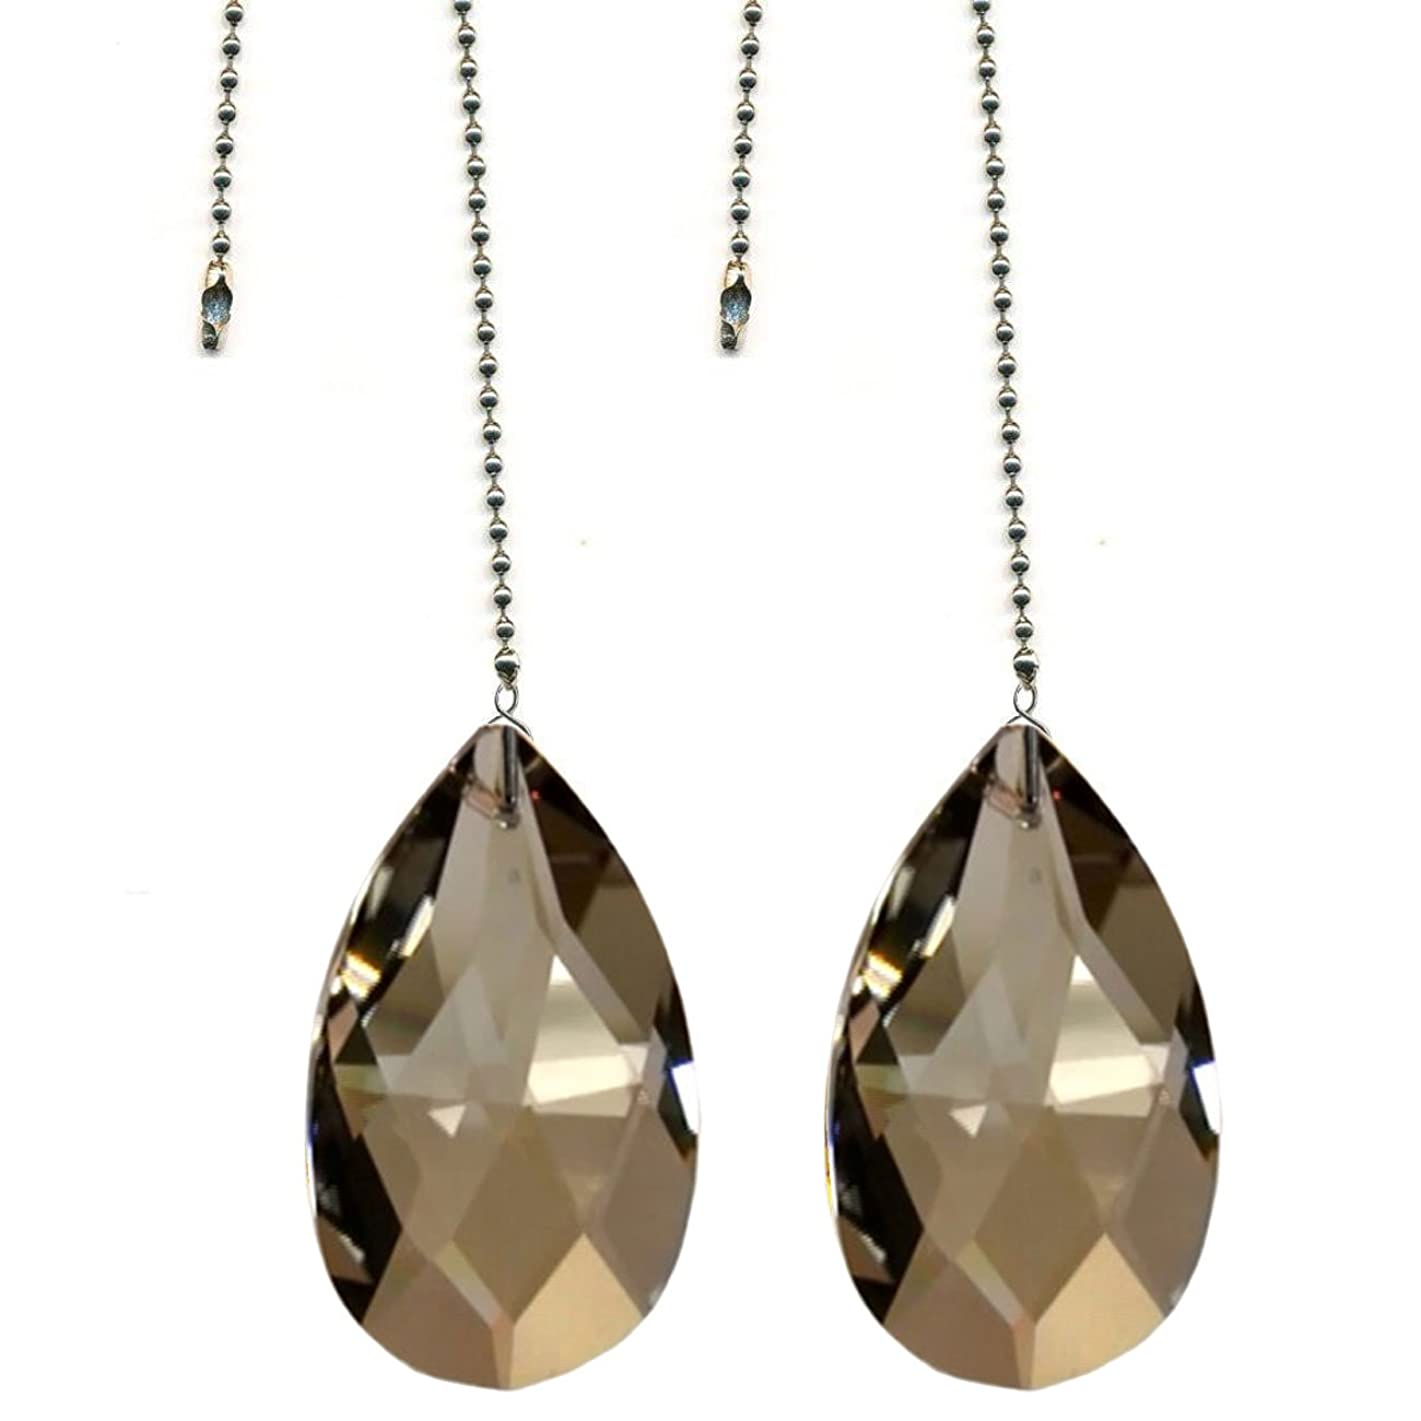 CrystalPlace Ceiling Fan Pull Chain Swarovski Strass Champagne Crystal Almond Prism Fan Pulley Set of 2